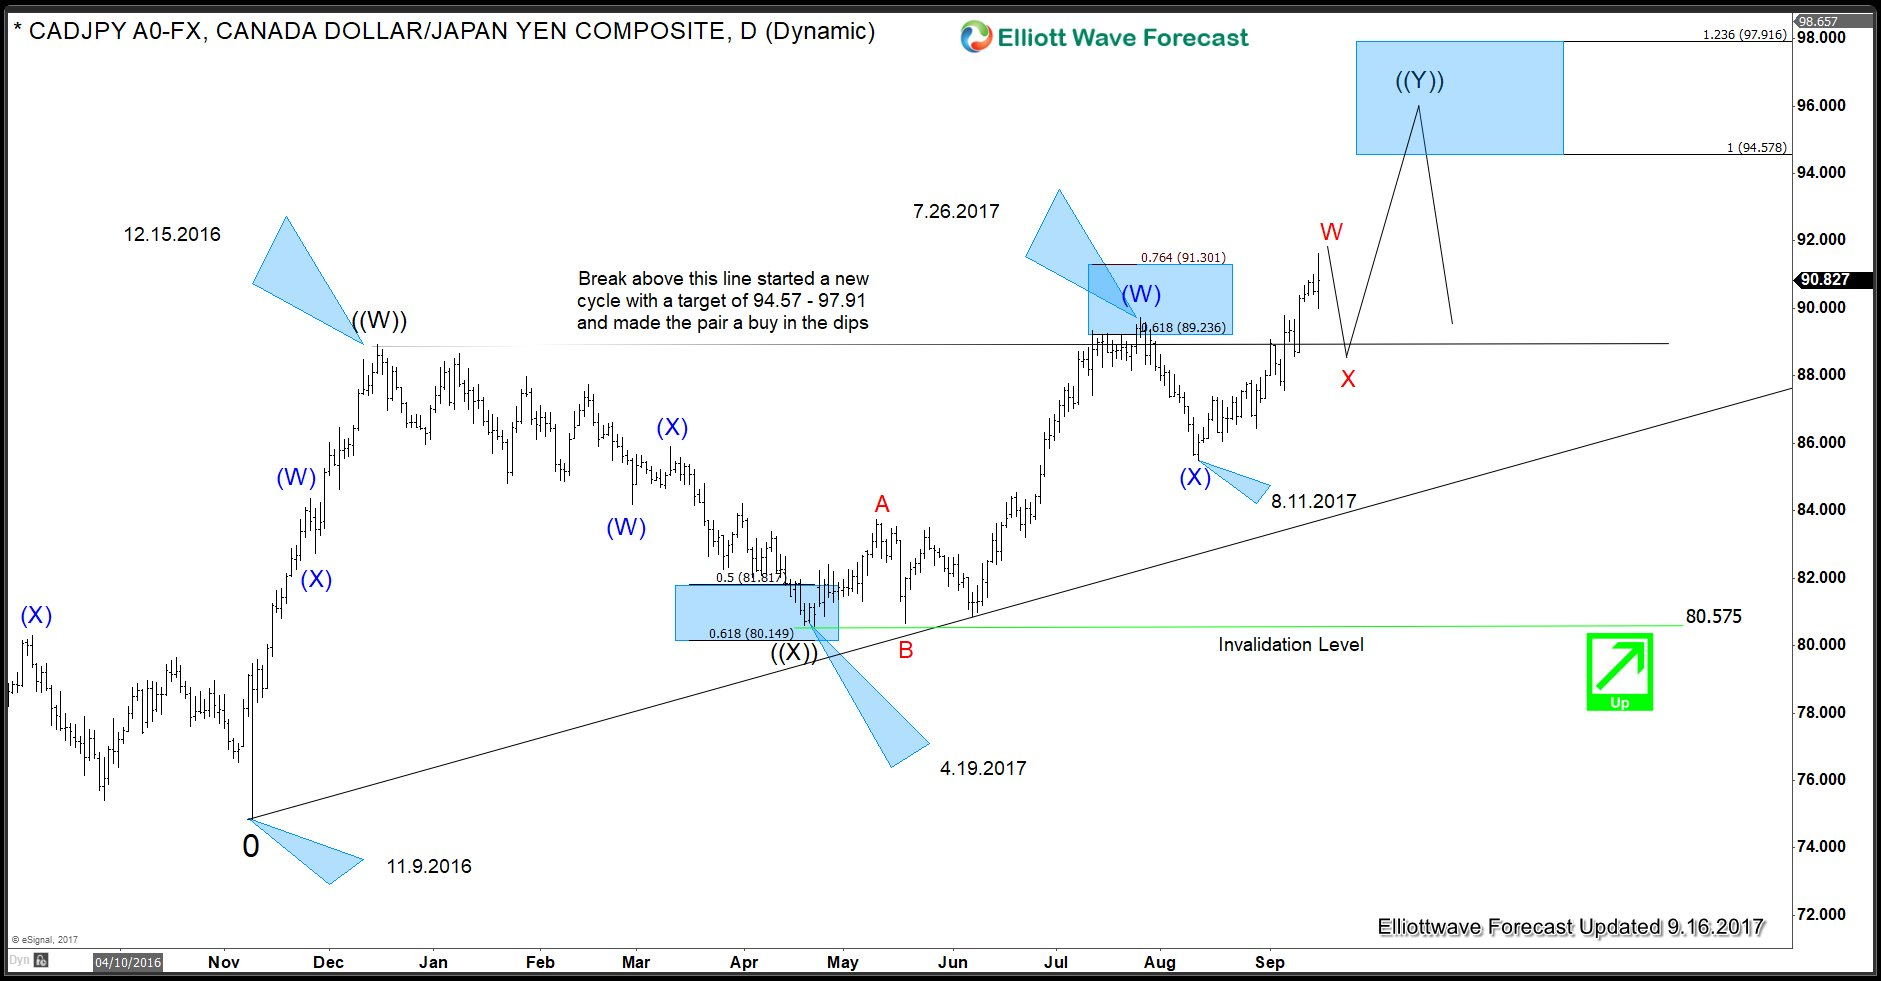 Cadjpy Elliott Wave Sequence Still Bullish